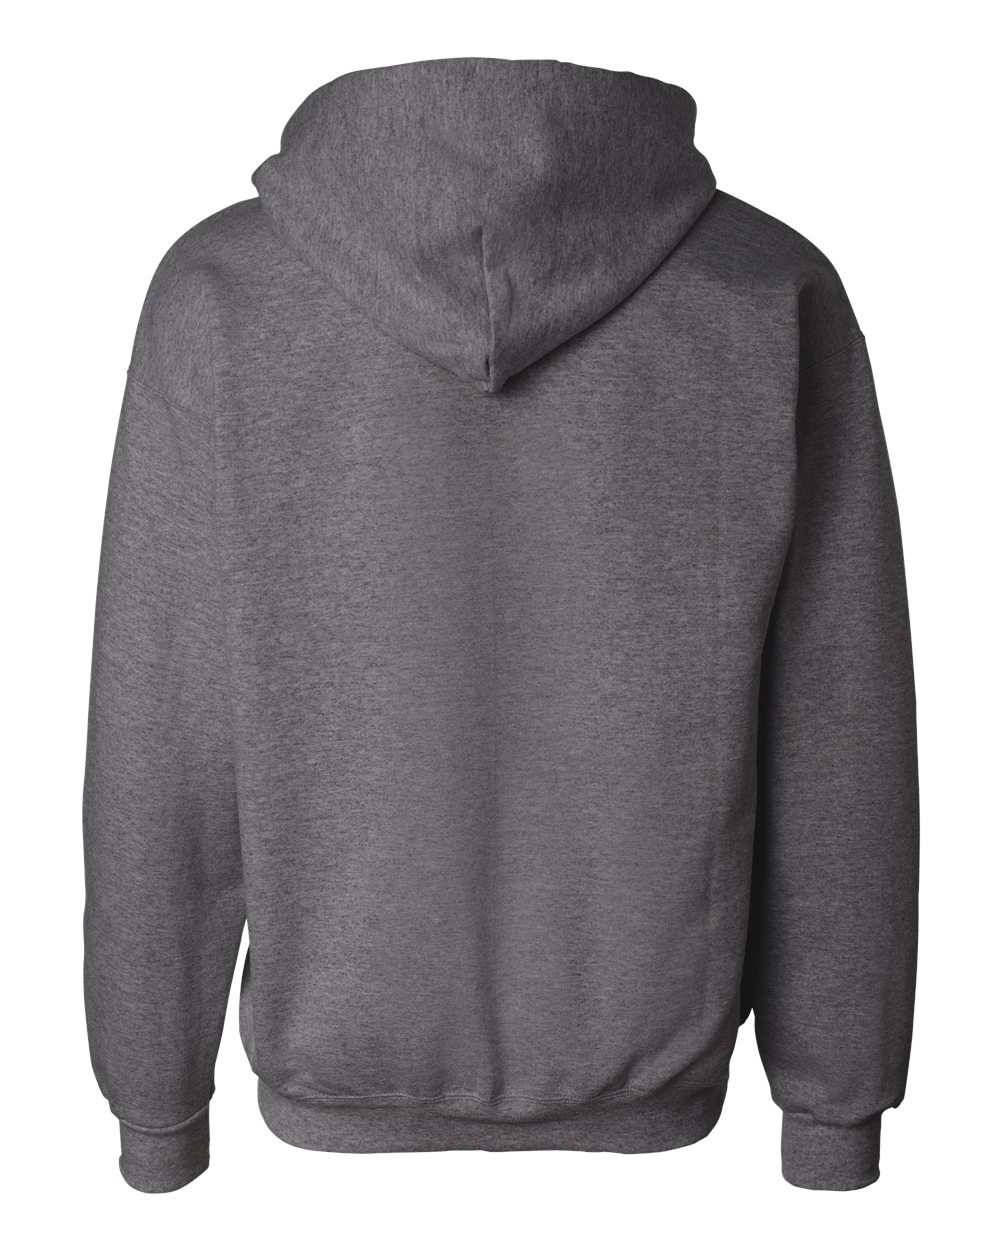 Hanes-Mens-Blank-Ultimate-Cotton-Full-Zip-Hooded-Sweatshirt-F280-up-to-3XL miniature 10